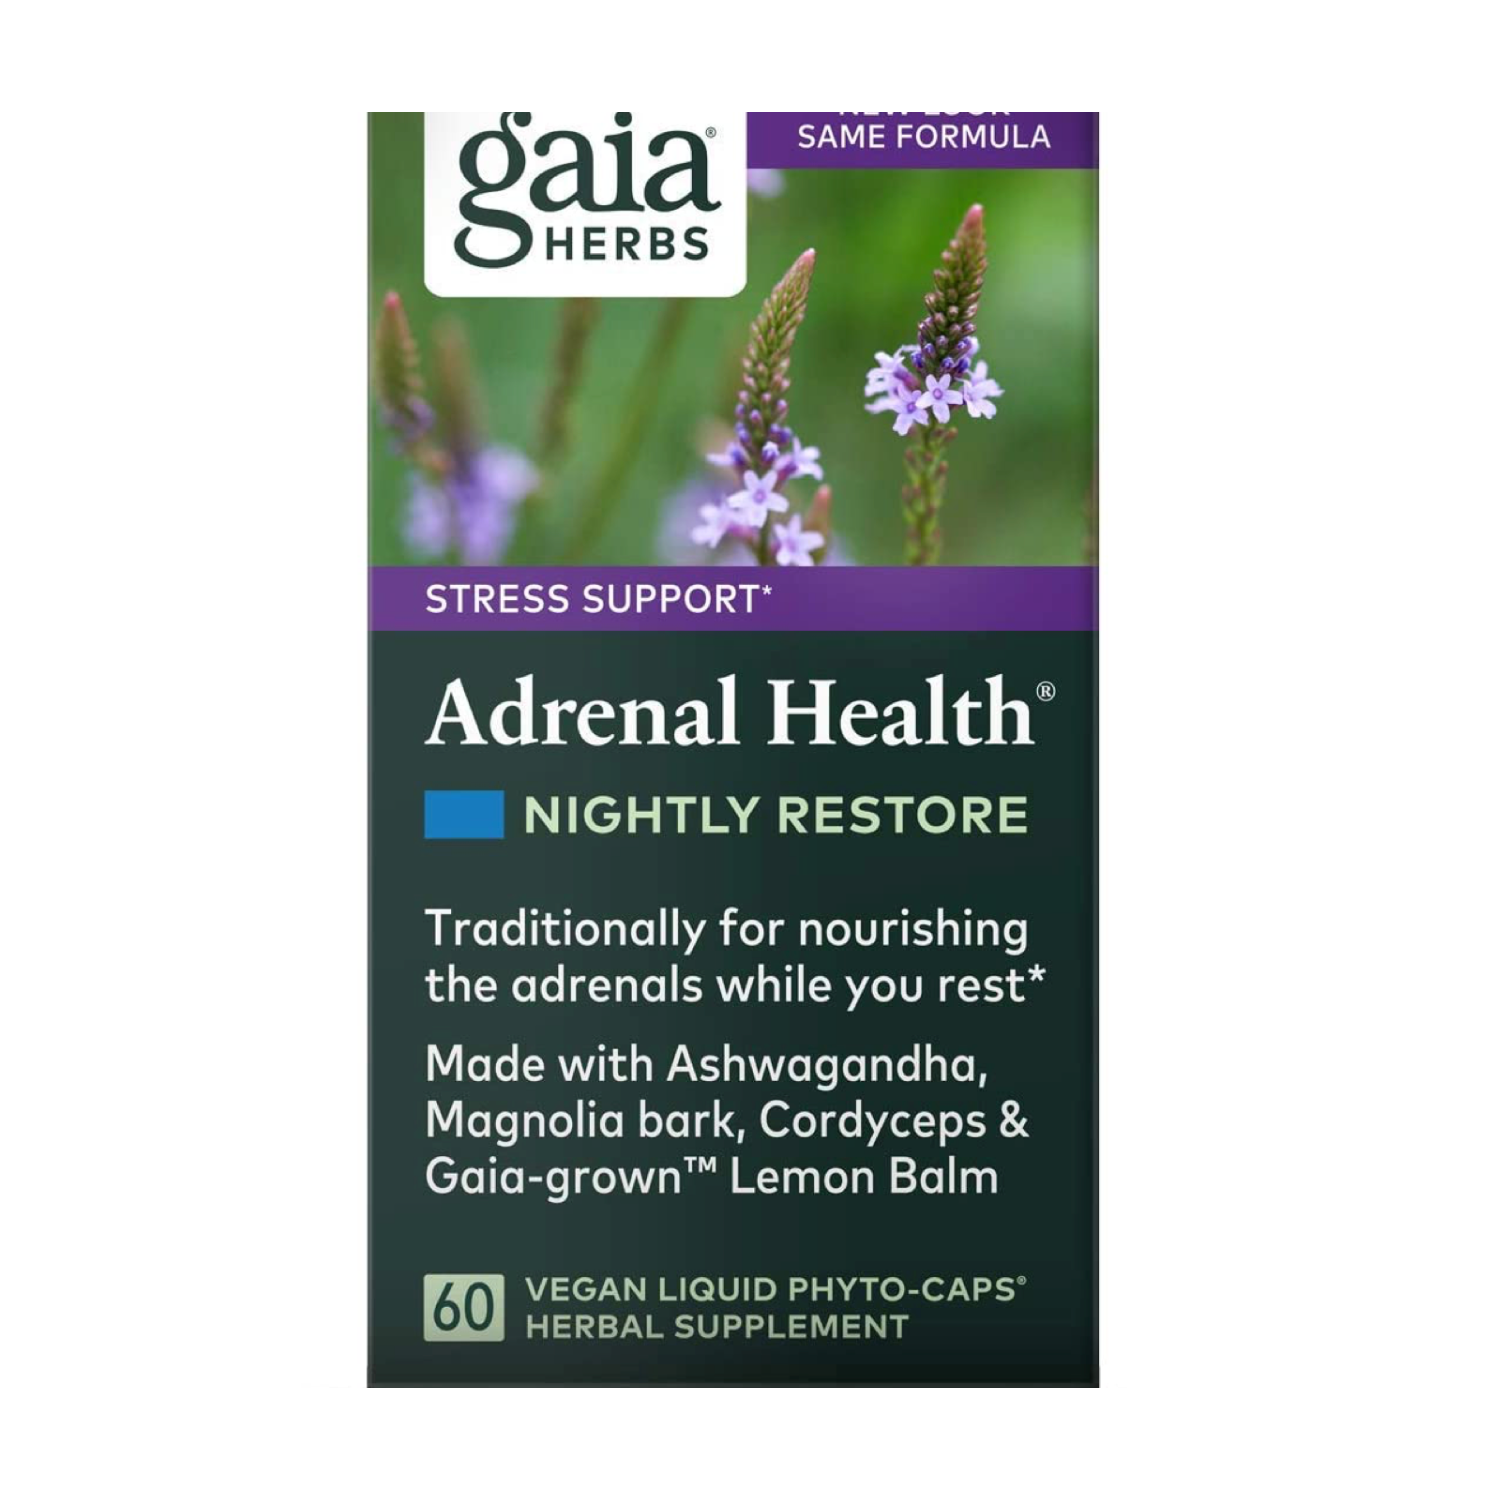 Adrenal Health Nightly Restore, Gaia Herbs,